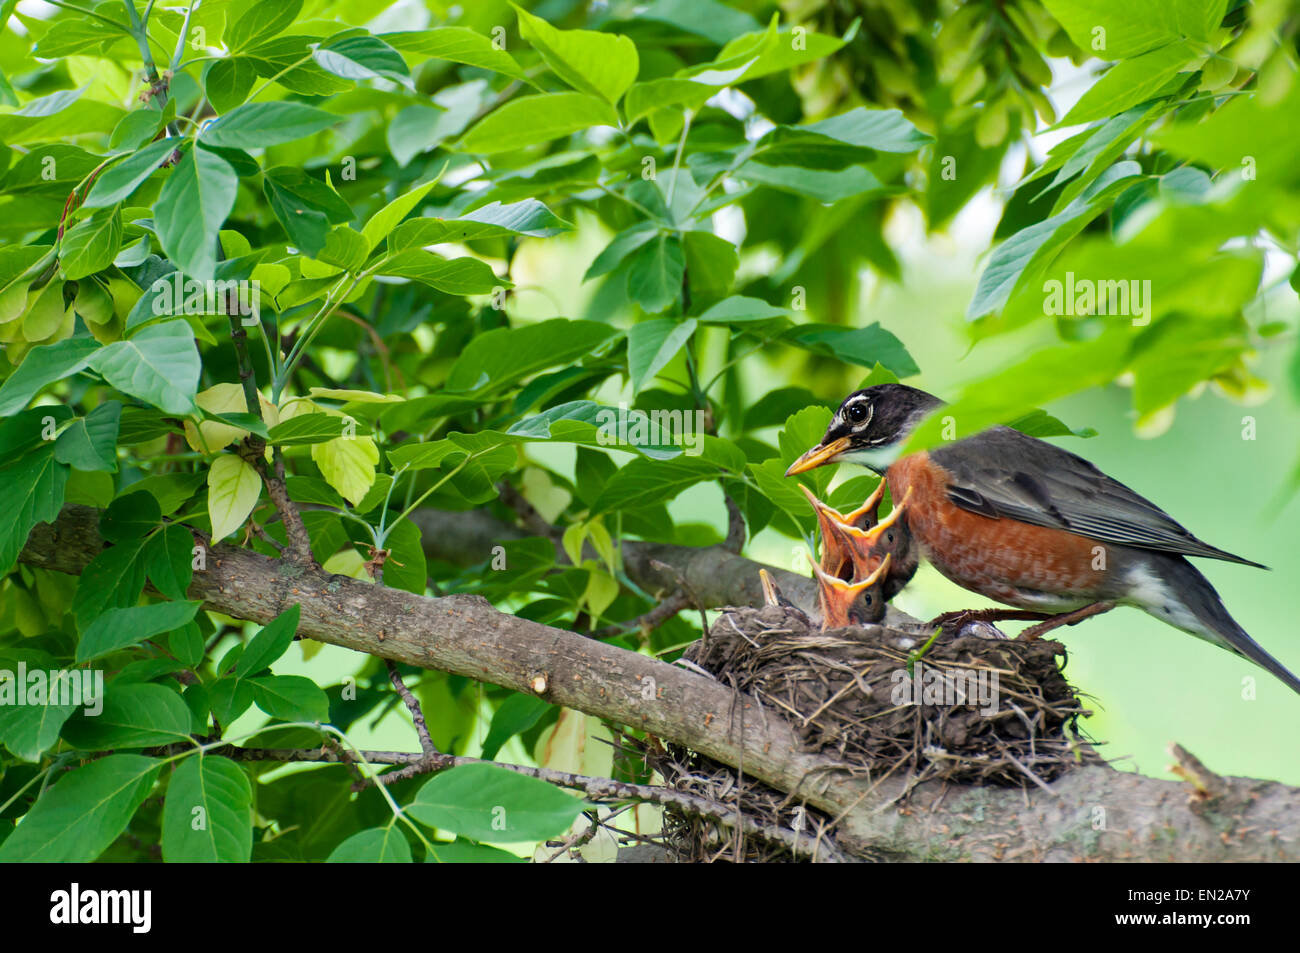 Momma Robin feeds baby birds in nest on branch - Stock Image